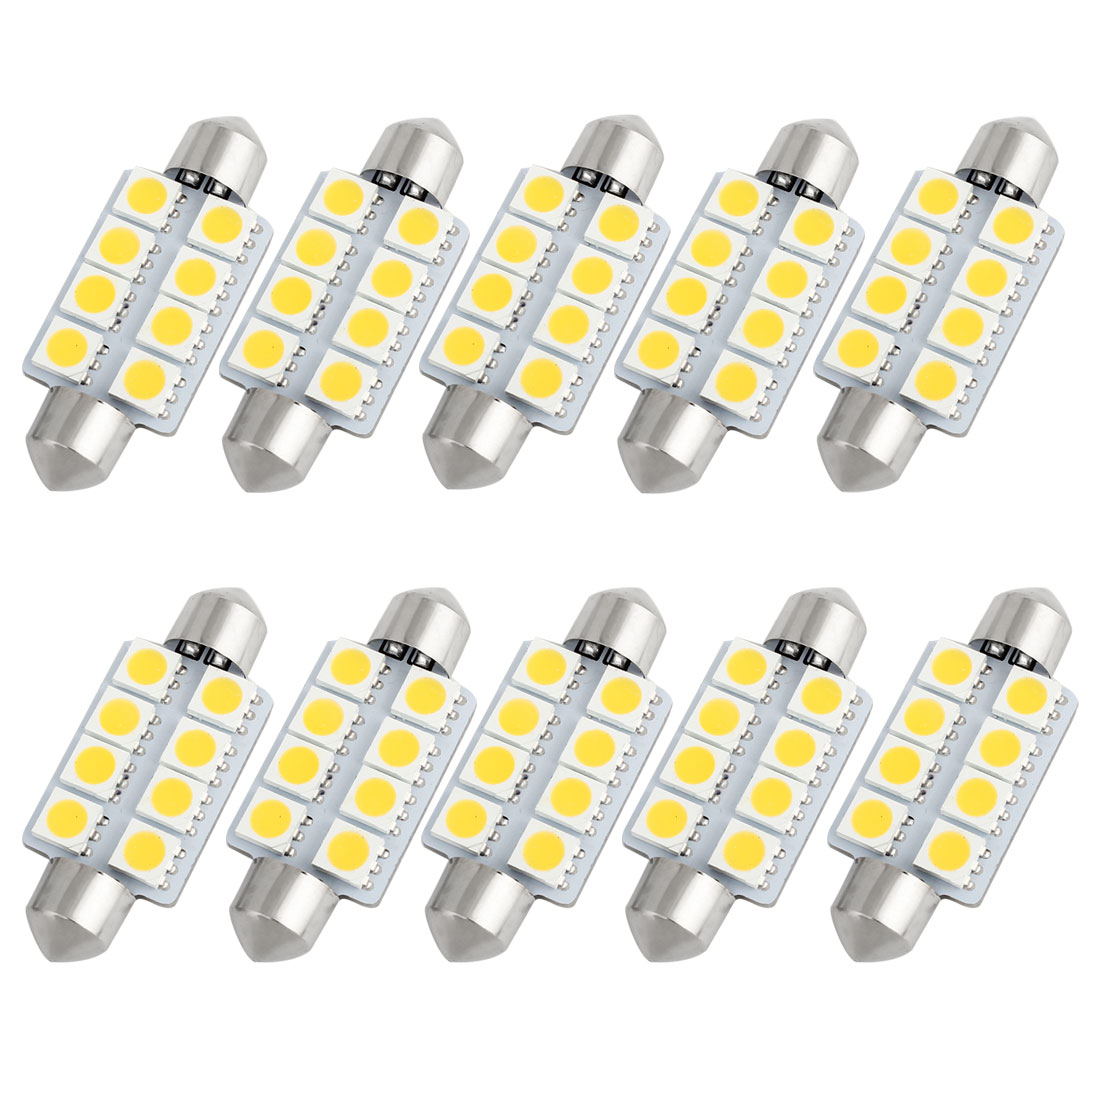 10pcs 41mm 5050 SMD 8-LED Festoon Dome Light Warm White 6413 211-2 212-2 560 Internal